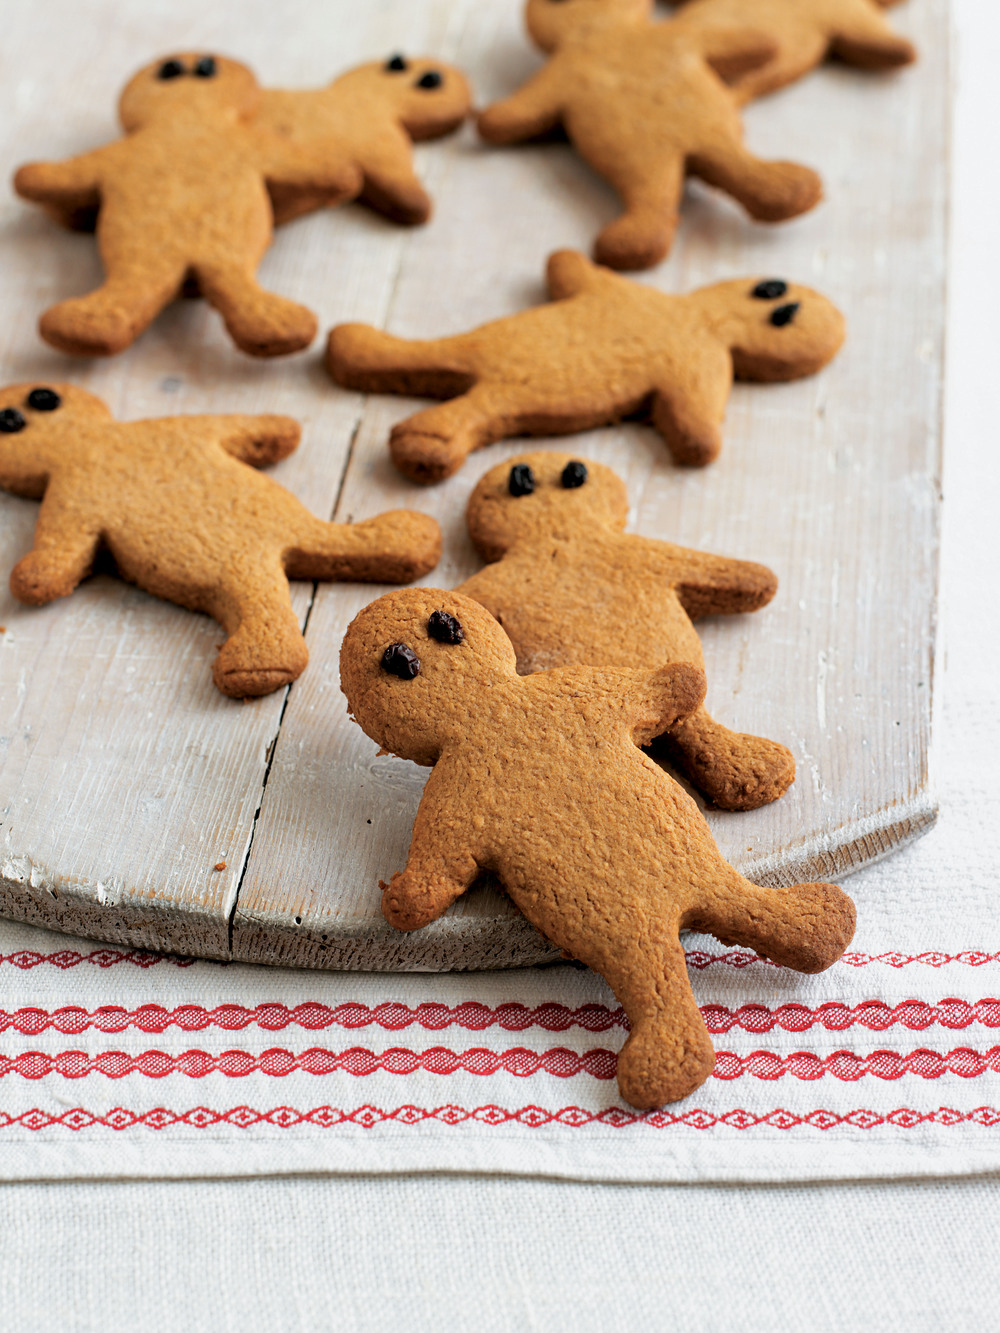 NouCuisine • Gluten-free Gingerbread Men recipe by munsiew